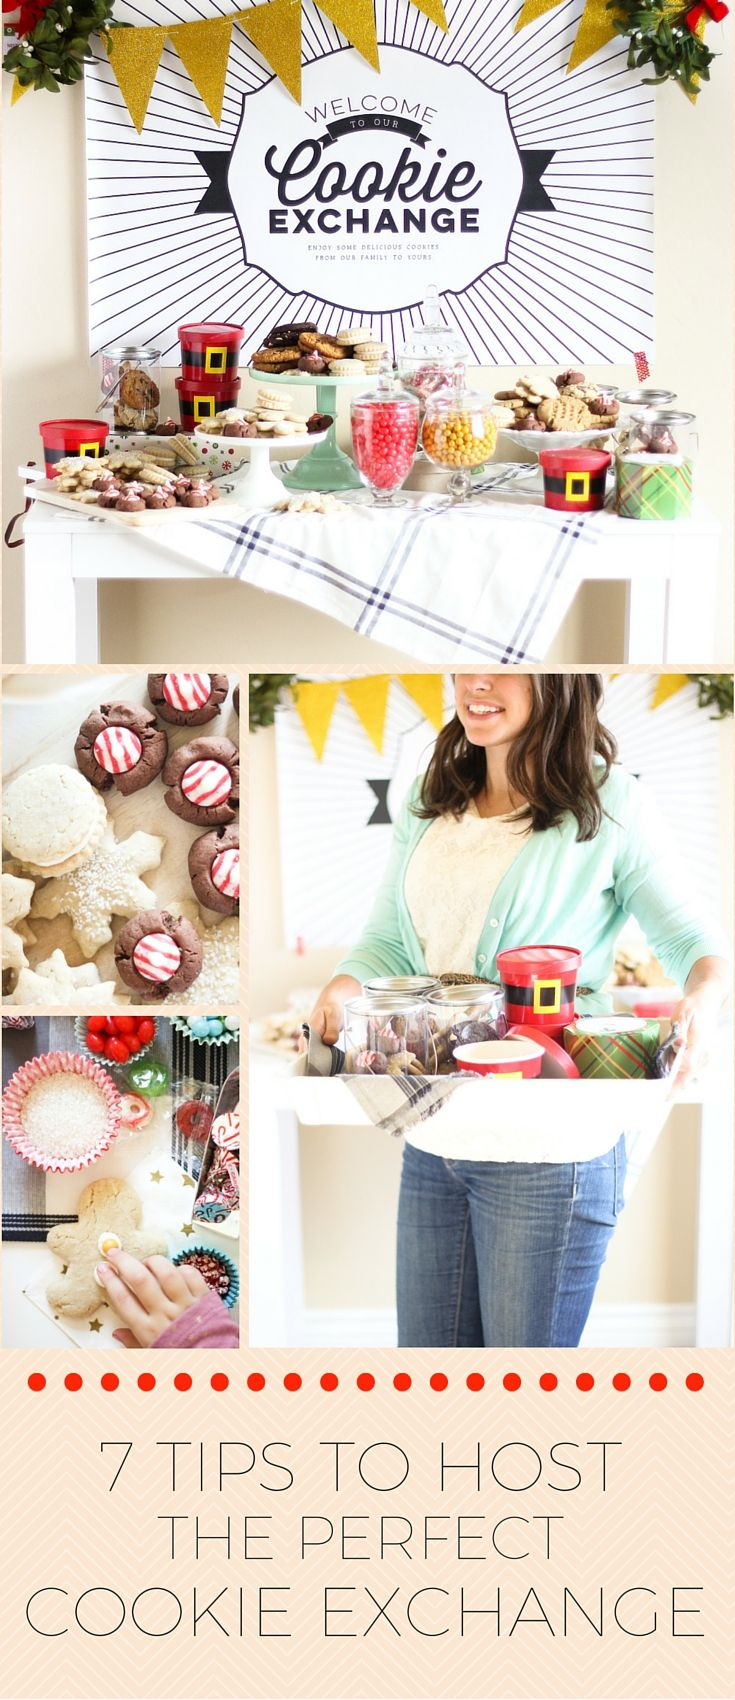 Hosting parties at Christmas time can be stressful, but a cookie exchange party is meant to be as fun and easy as it is delicious. Use our 7 tips to make hosting and decorating for your Christmas Cookie Exchange party a breeze.